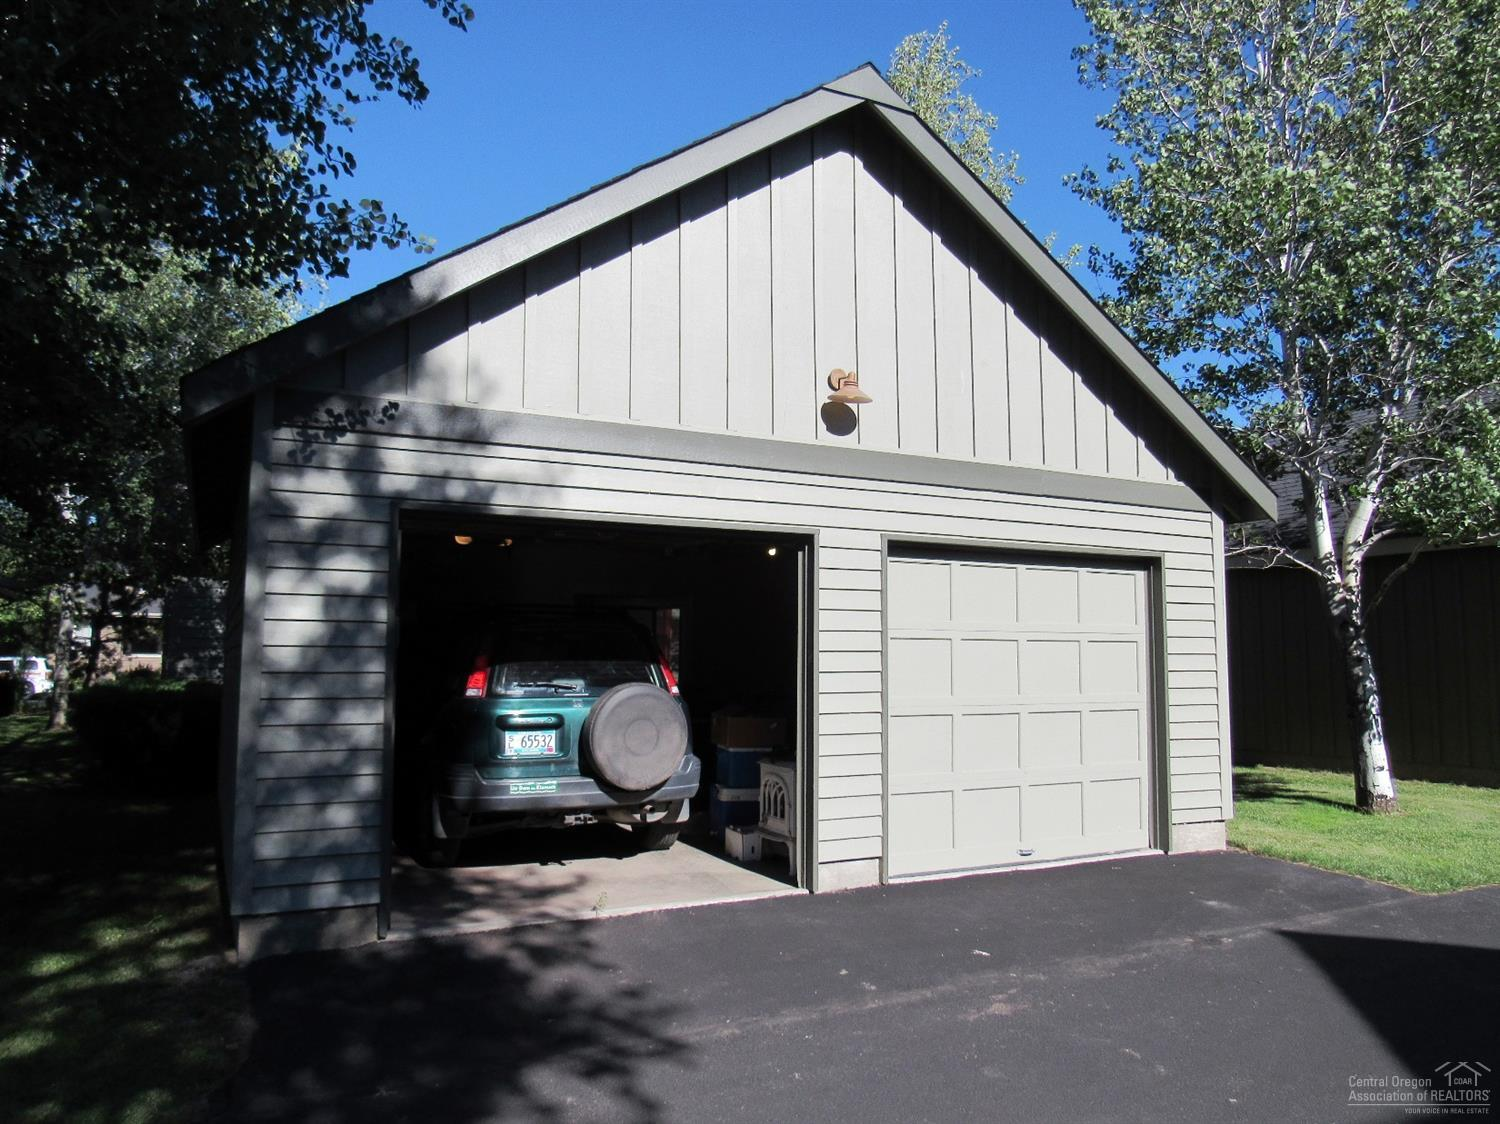 2 car garage that has been sheetrocked.